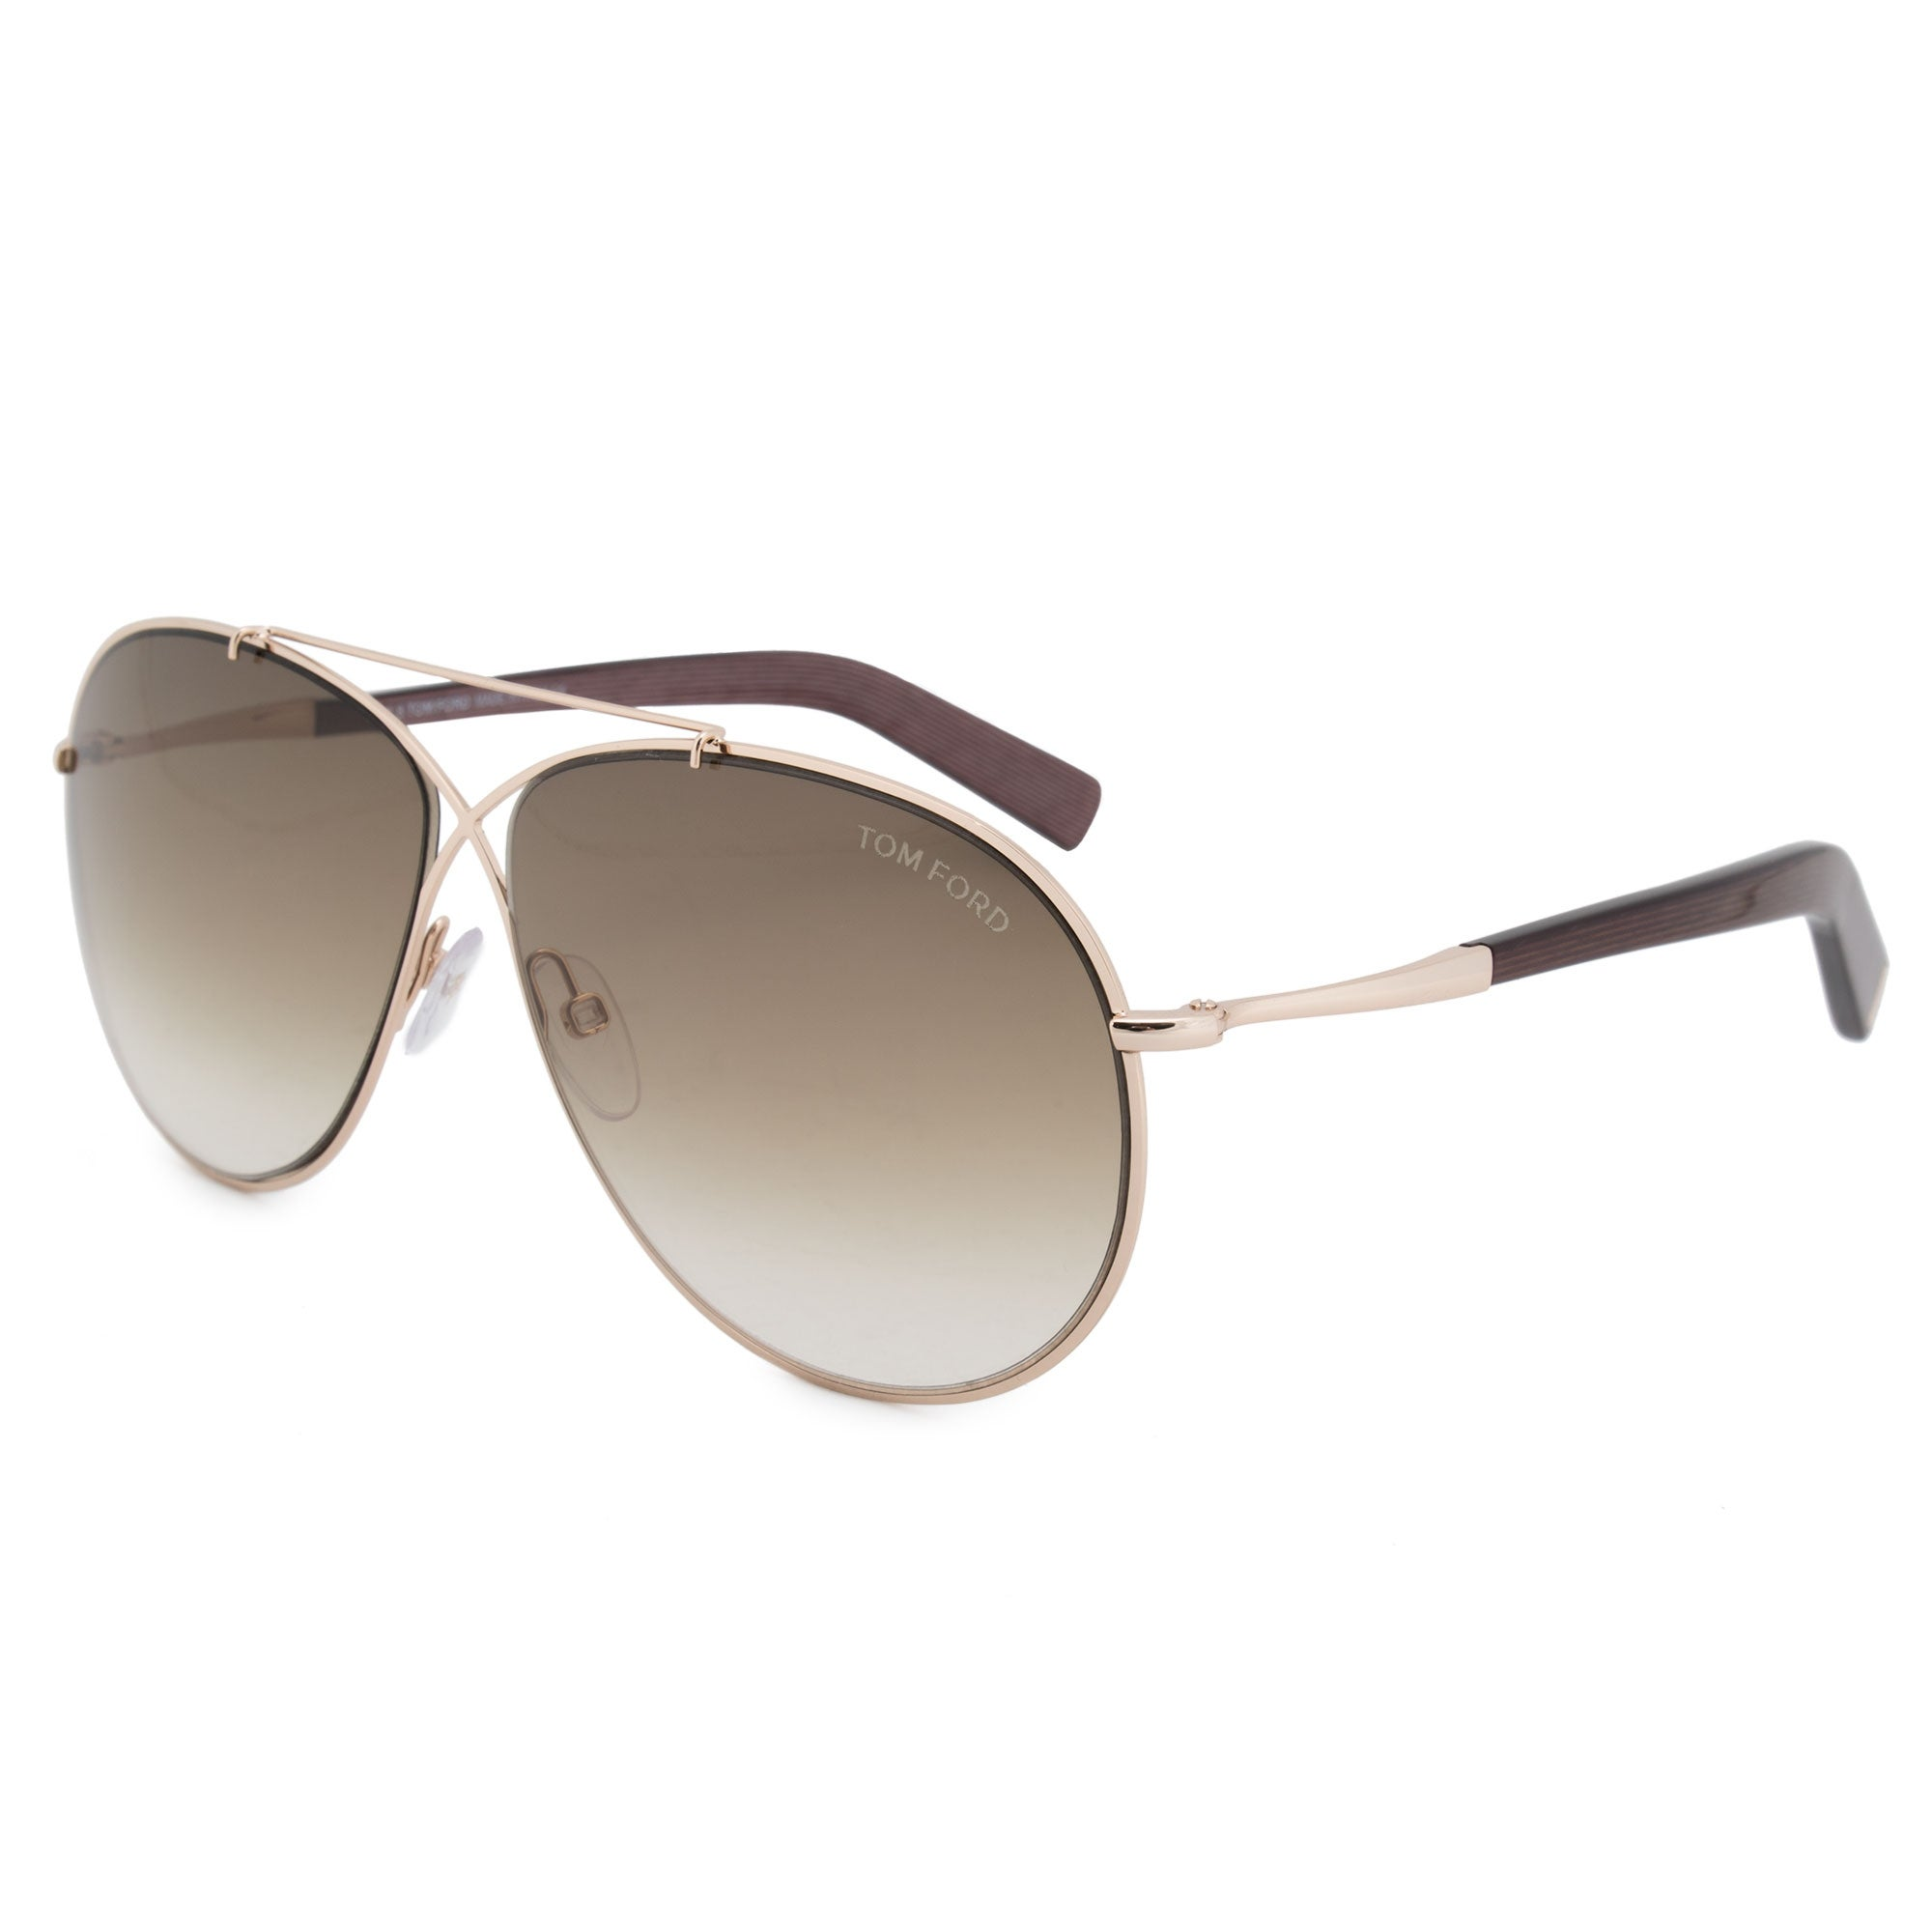 d1297007d90 Shop Tom Ford Eva Pilot Sunglasses FT0374 28F 61 - Free Shipping Today -  Overstock - 24239738